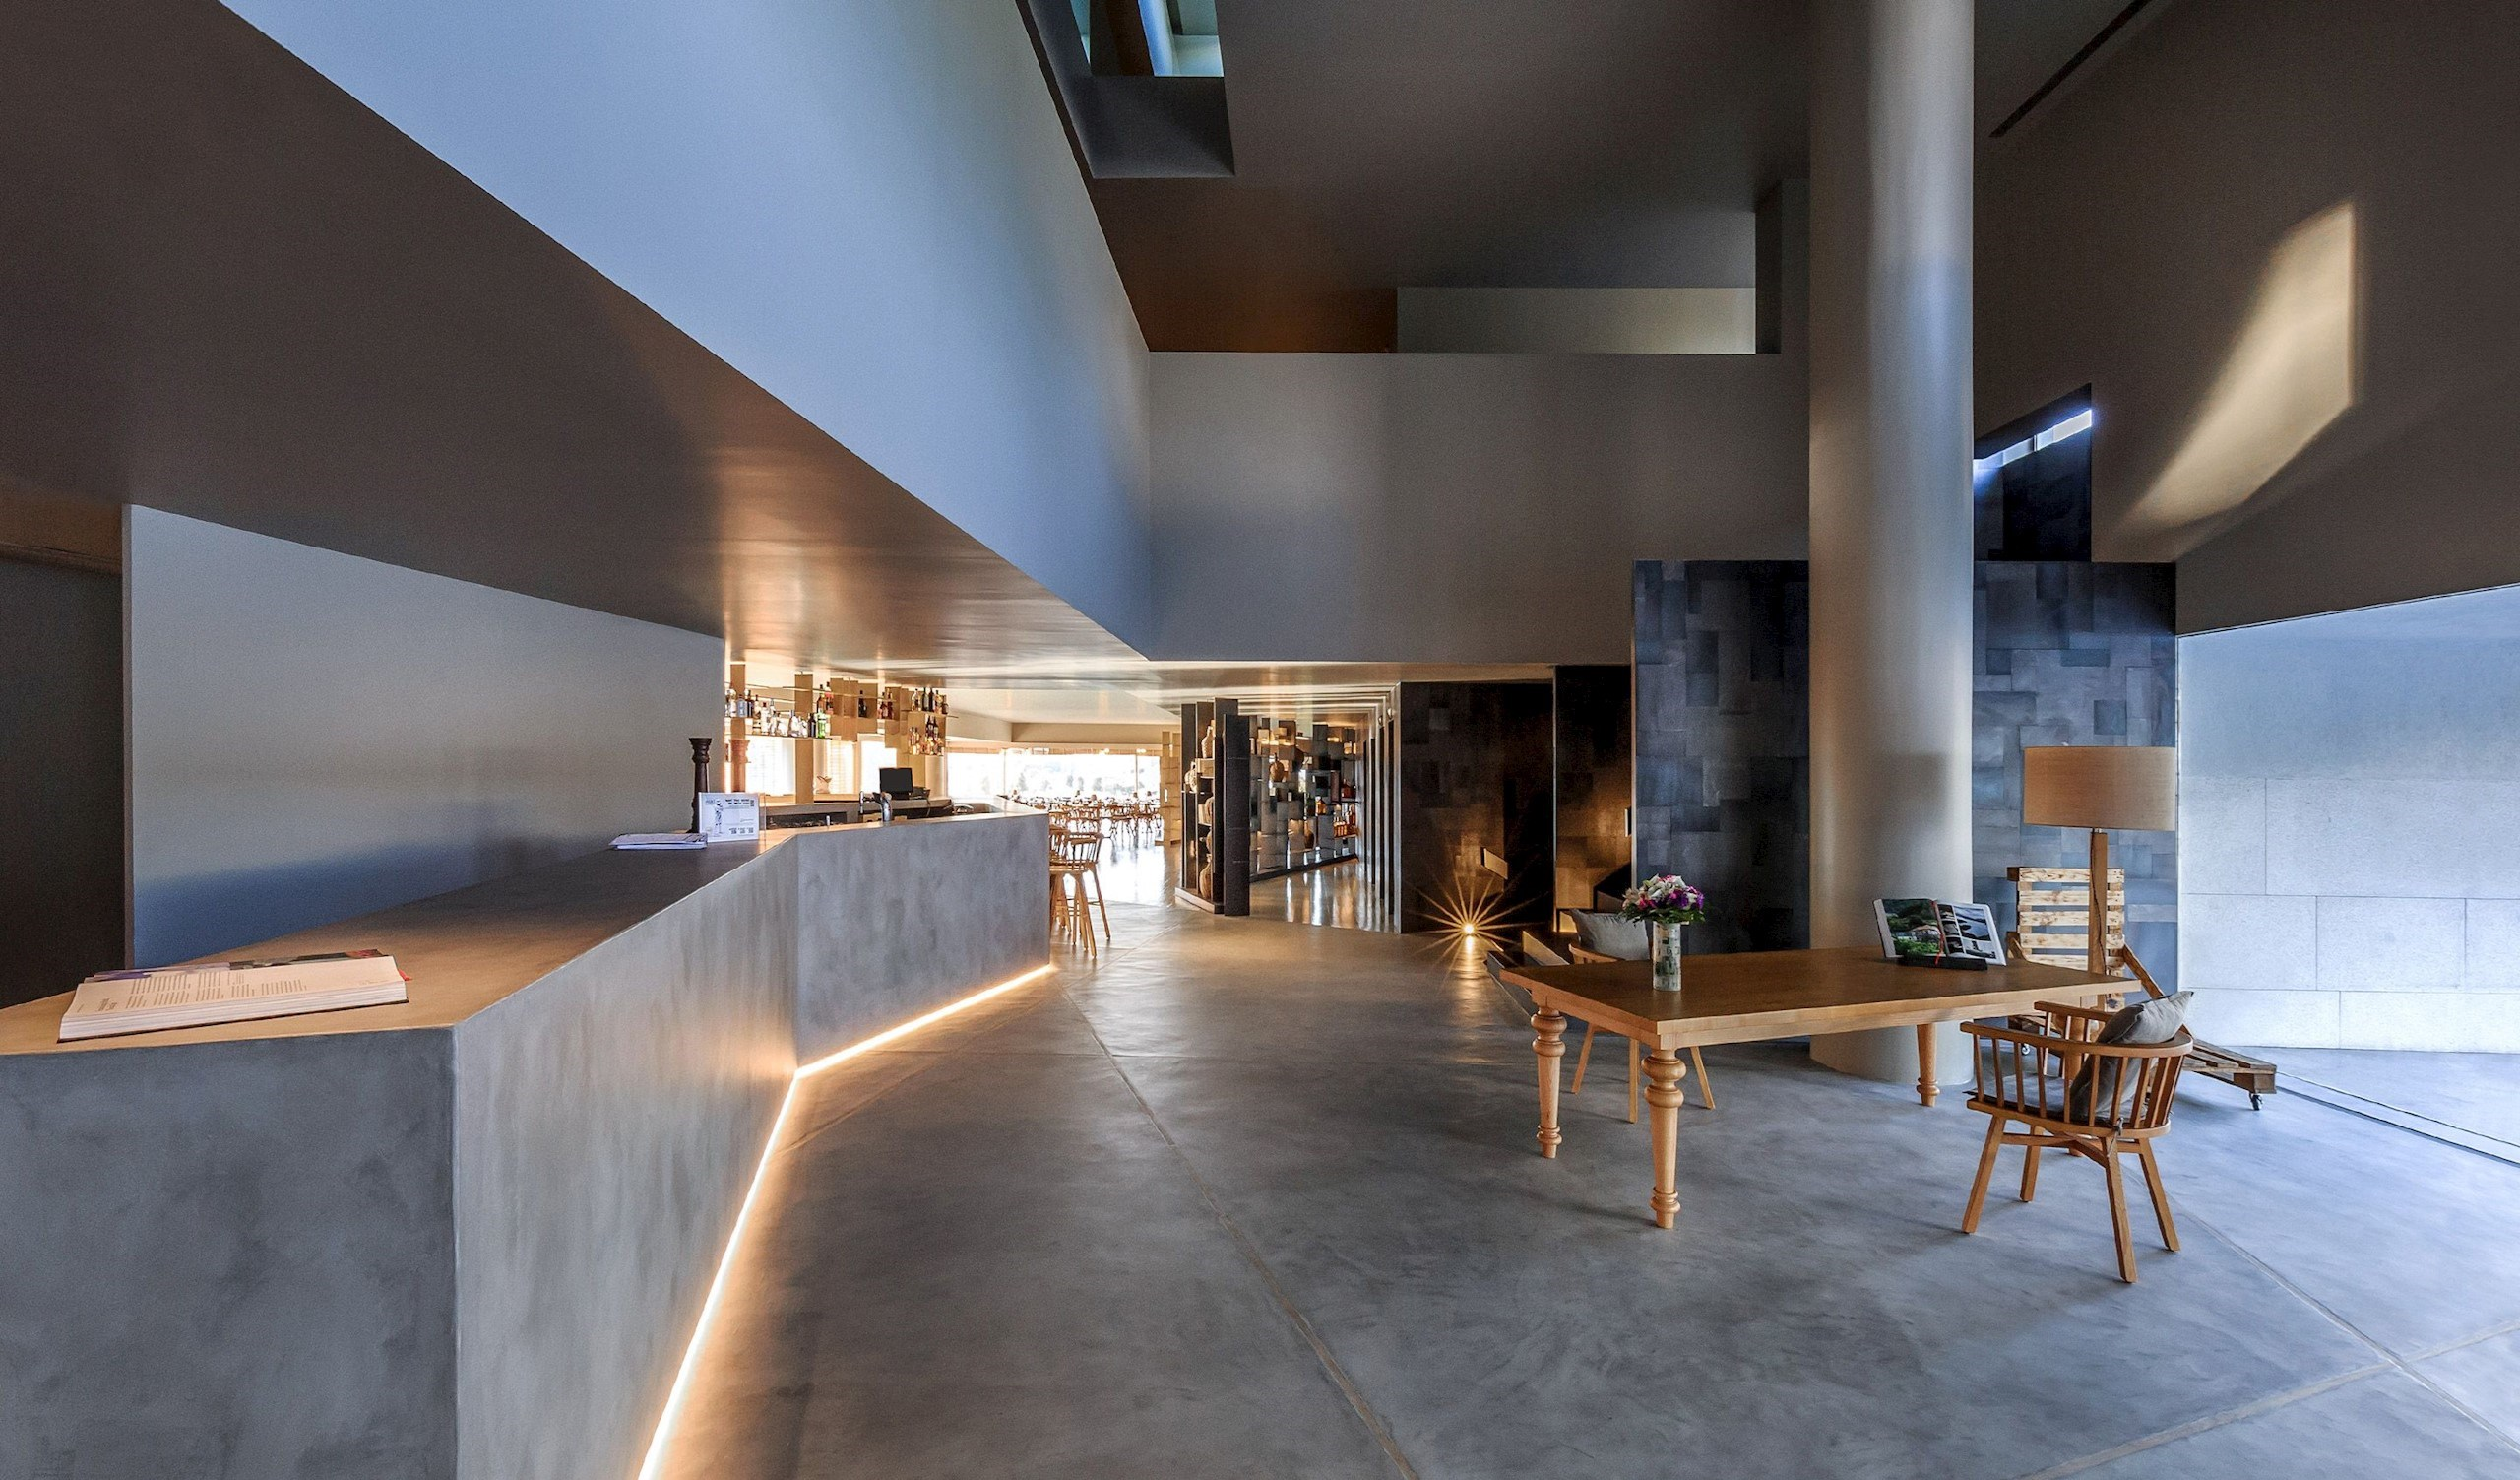 Villa C Boutique Hotel Interior Design in Vila do Conde